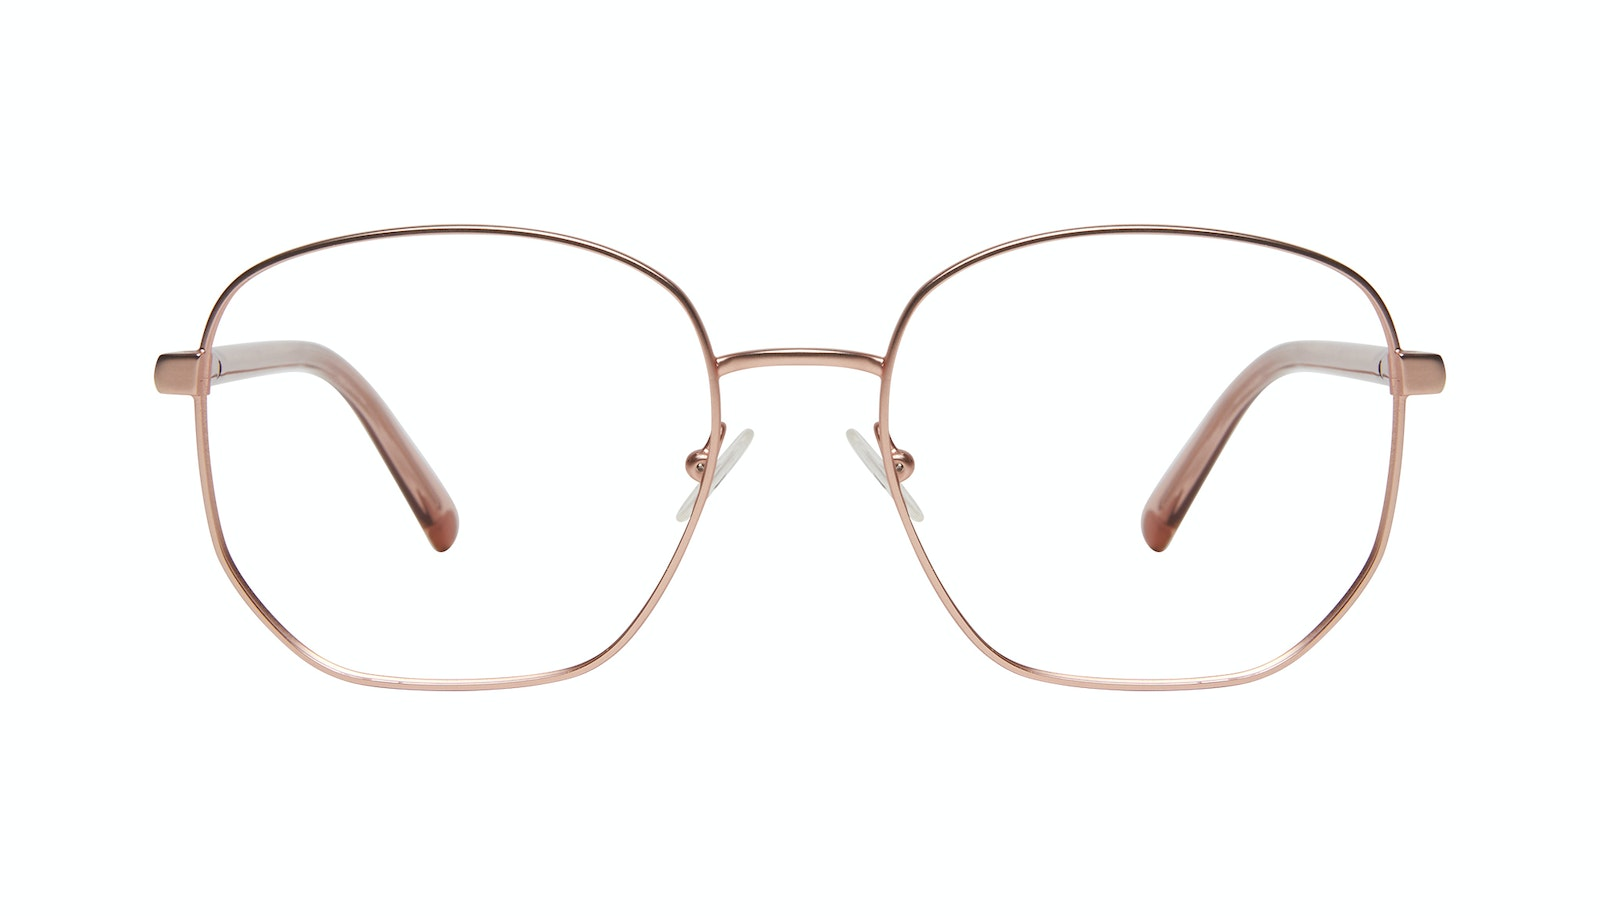 Affordable Fashion Glasses Round Eyeglasses Women Laïka Rose Gold Matte